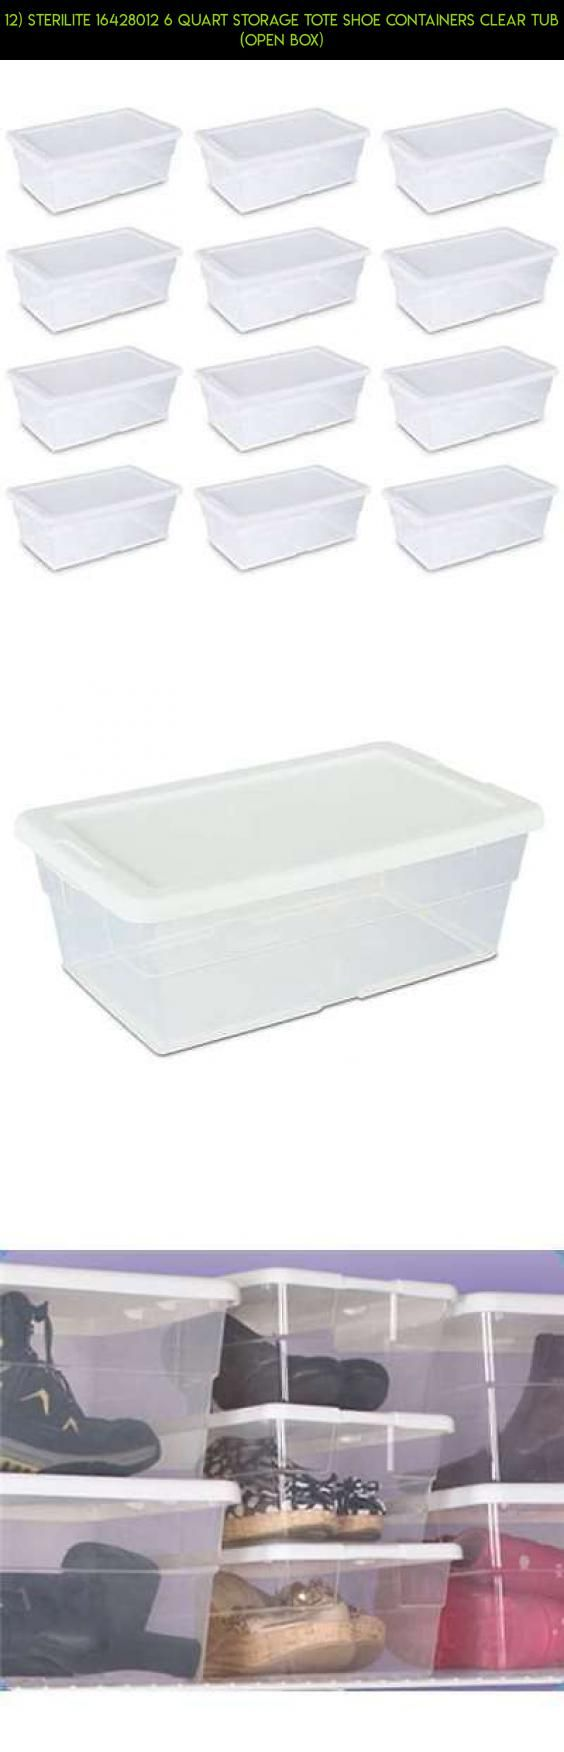 12) Sterilite 16428012 6 Quart Storage Tote Shoe Containers Clear Tub (Open Box) #plans #tech #parts #technology #camera #fpv #storage #gadgets #tubs #kit #drone #shopping #products #racing